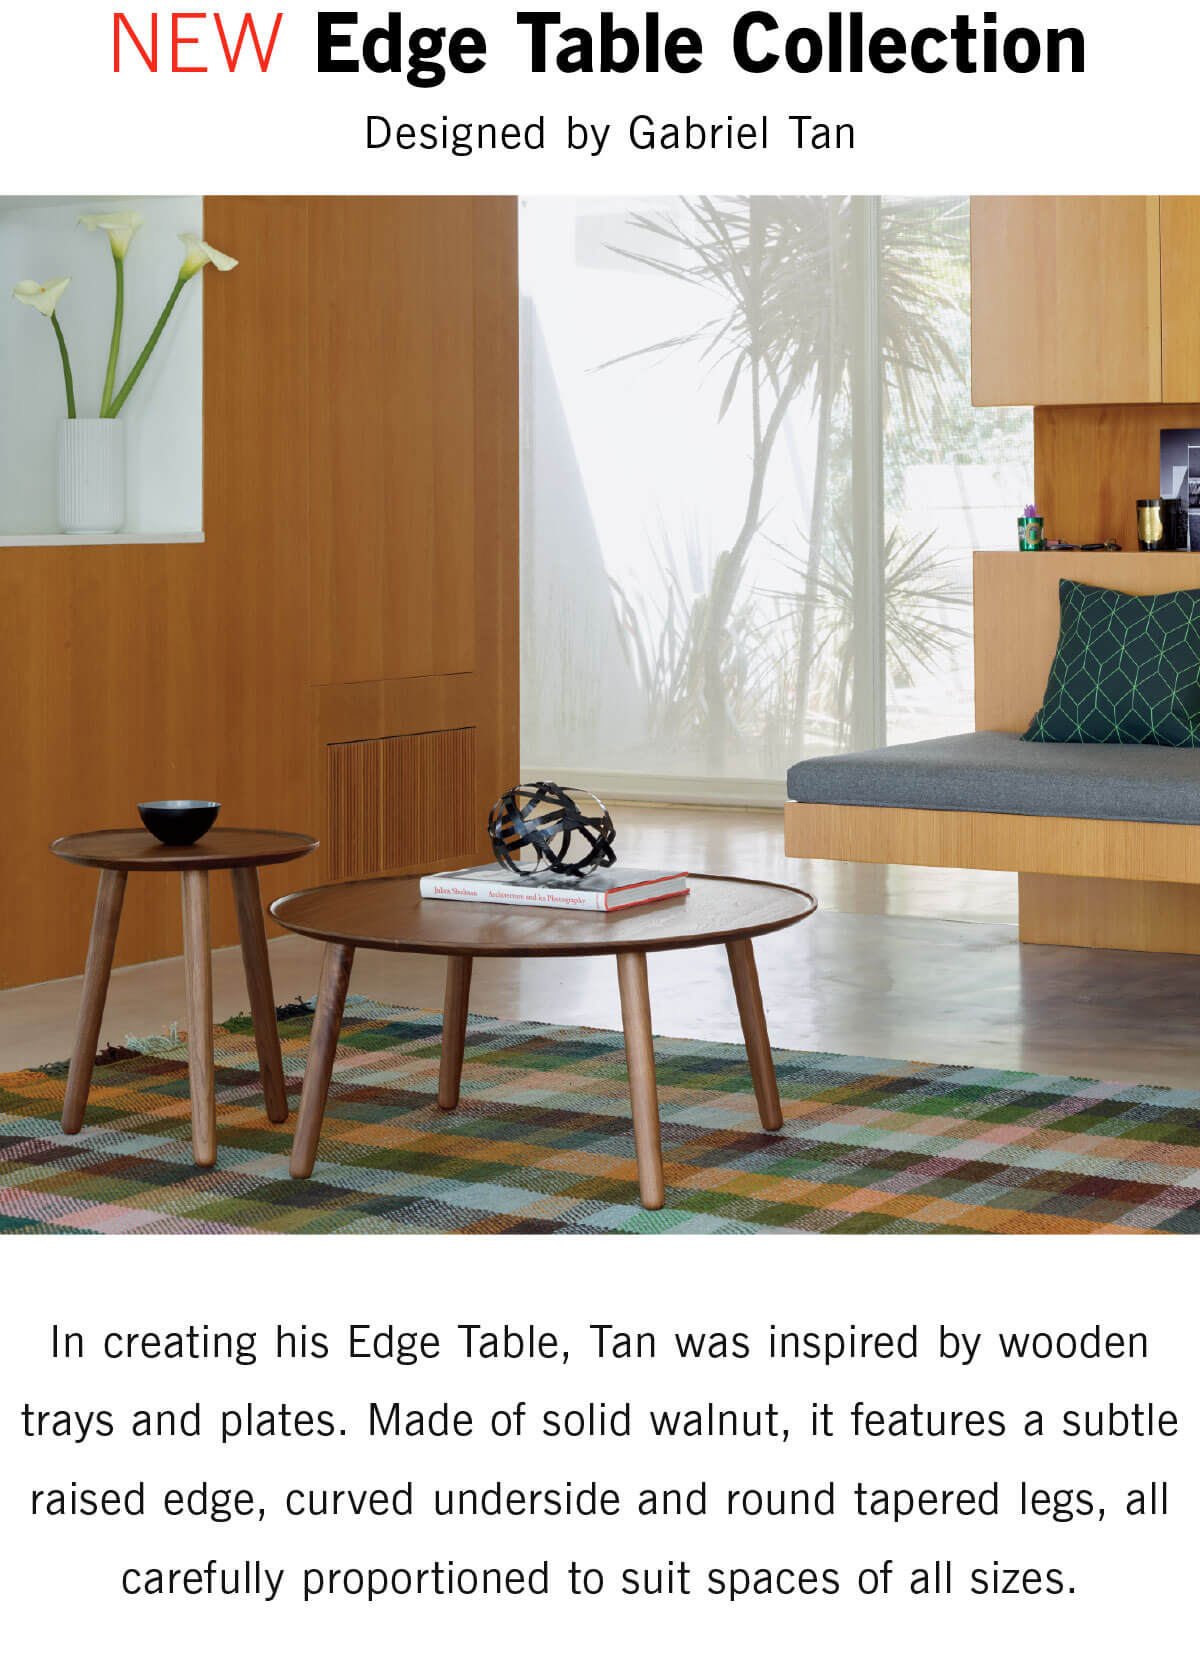 New Edge Table Collection